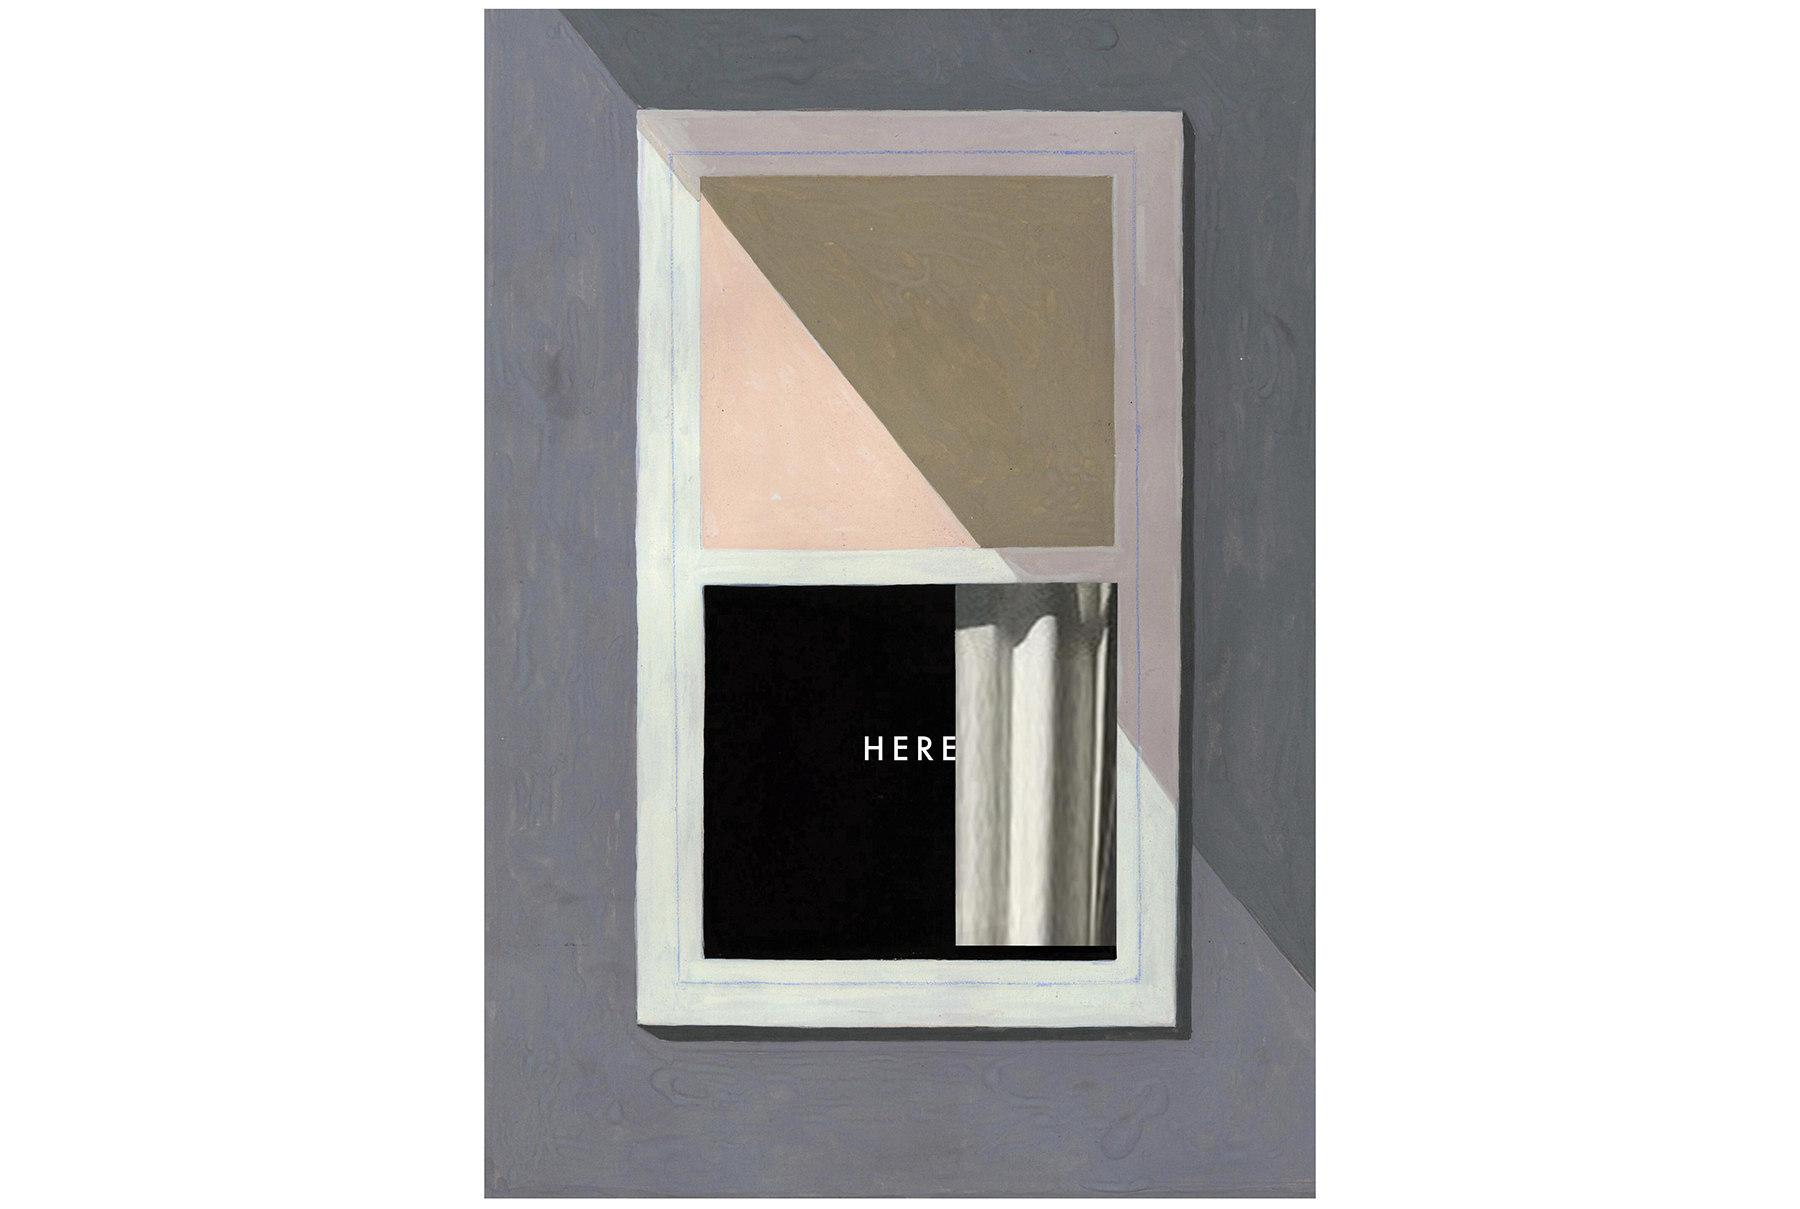 Here, by Richard McGuire